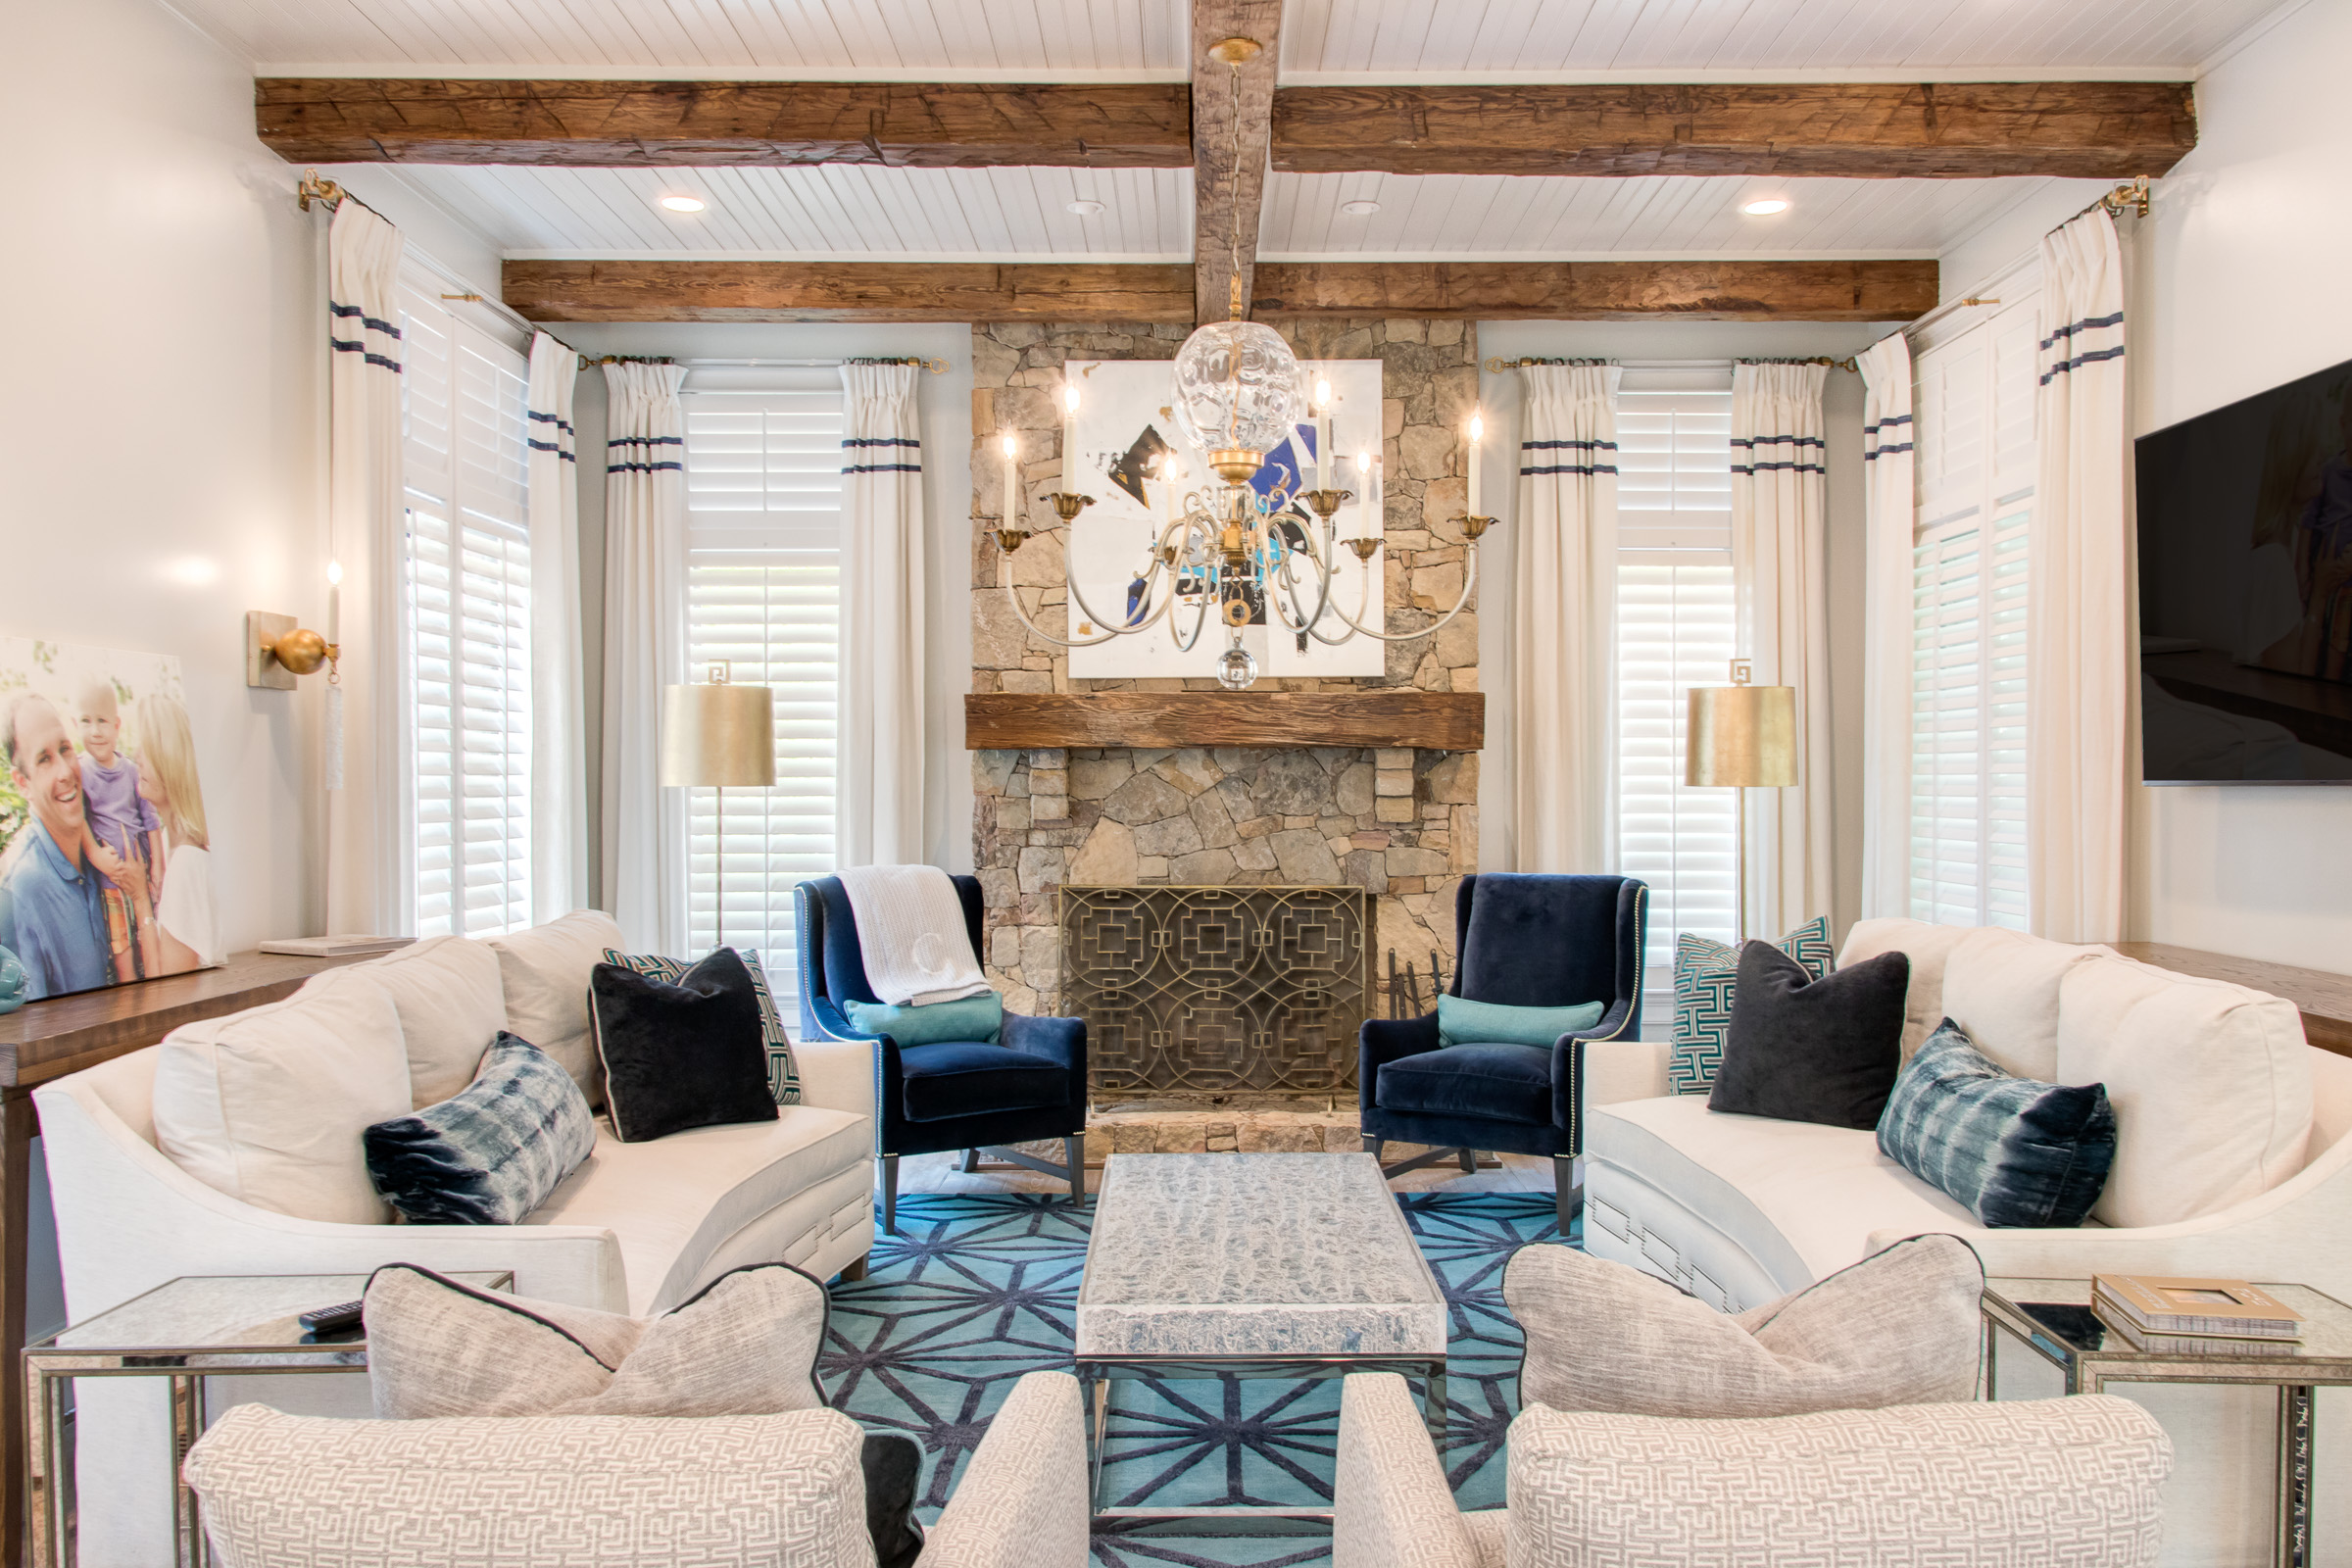 Exposed wood beams accent the stone fireplace and wood mantle surrounded by plush cream furniture.